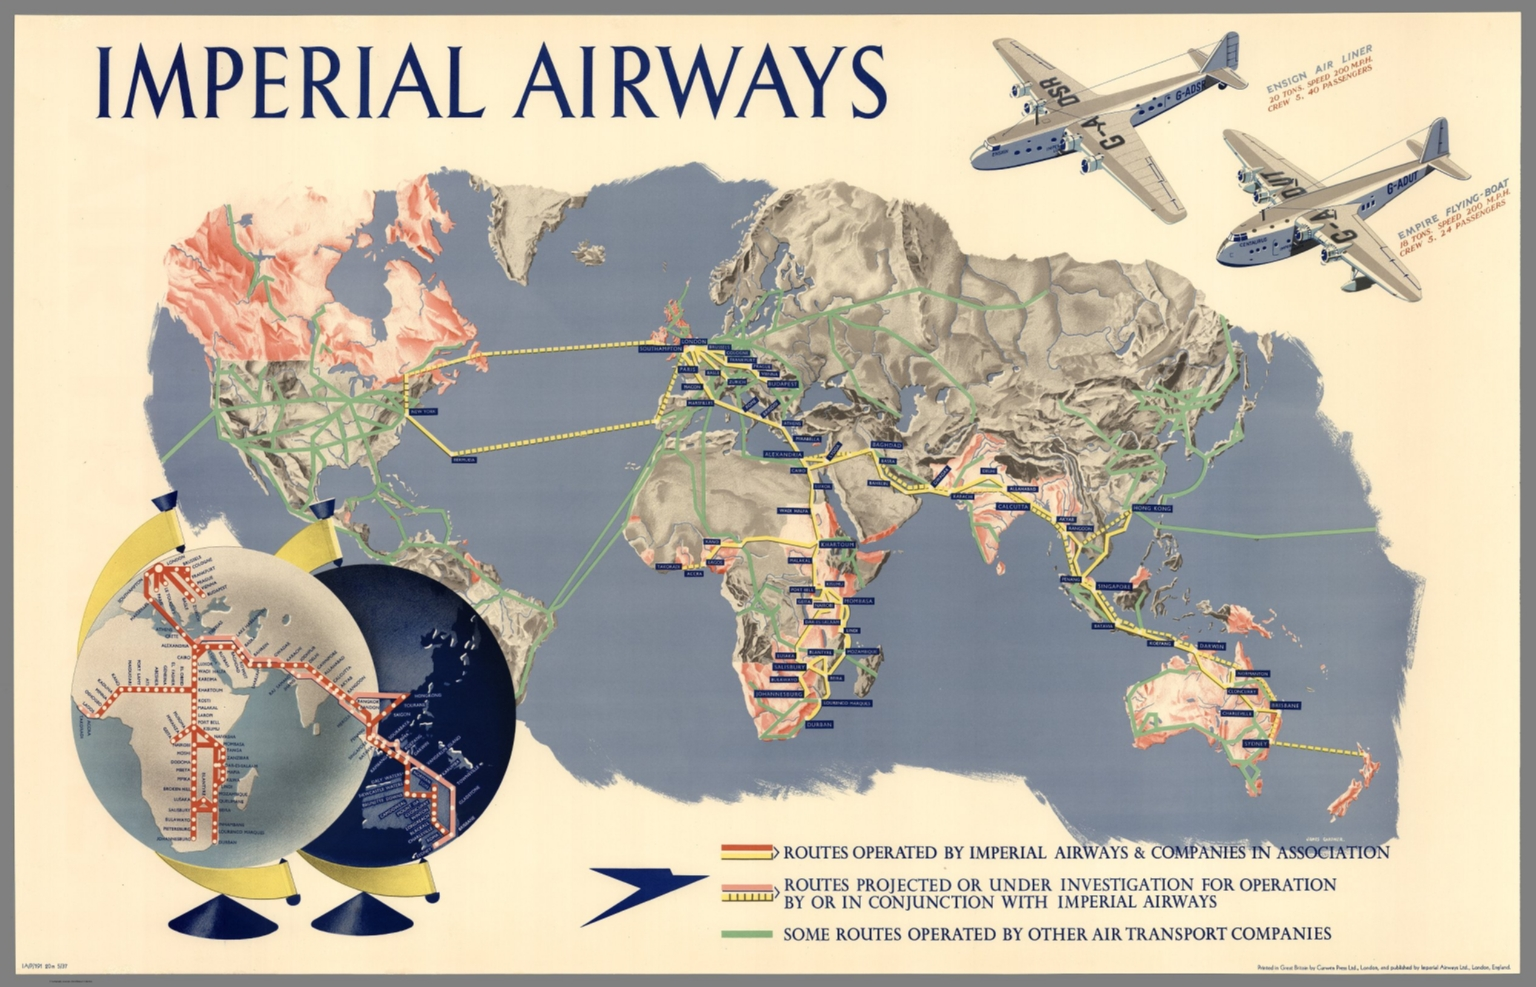 Imperial airways map of the world iap191 20m 537 david imperial airways map of the world iap191 20m 537 gumiabroncs Gallery